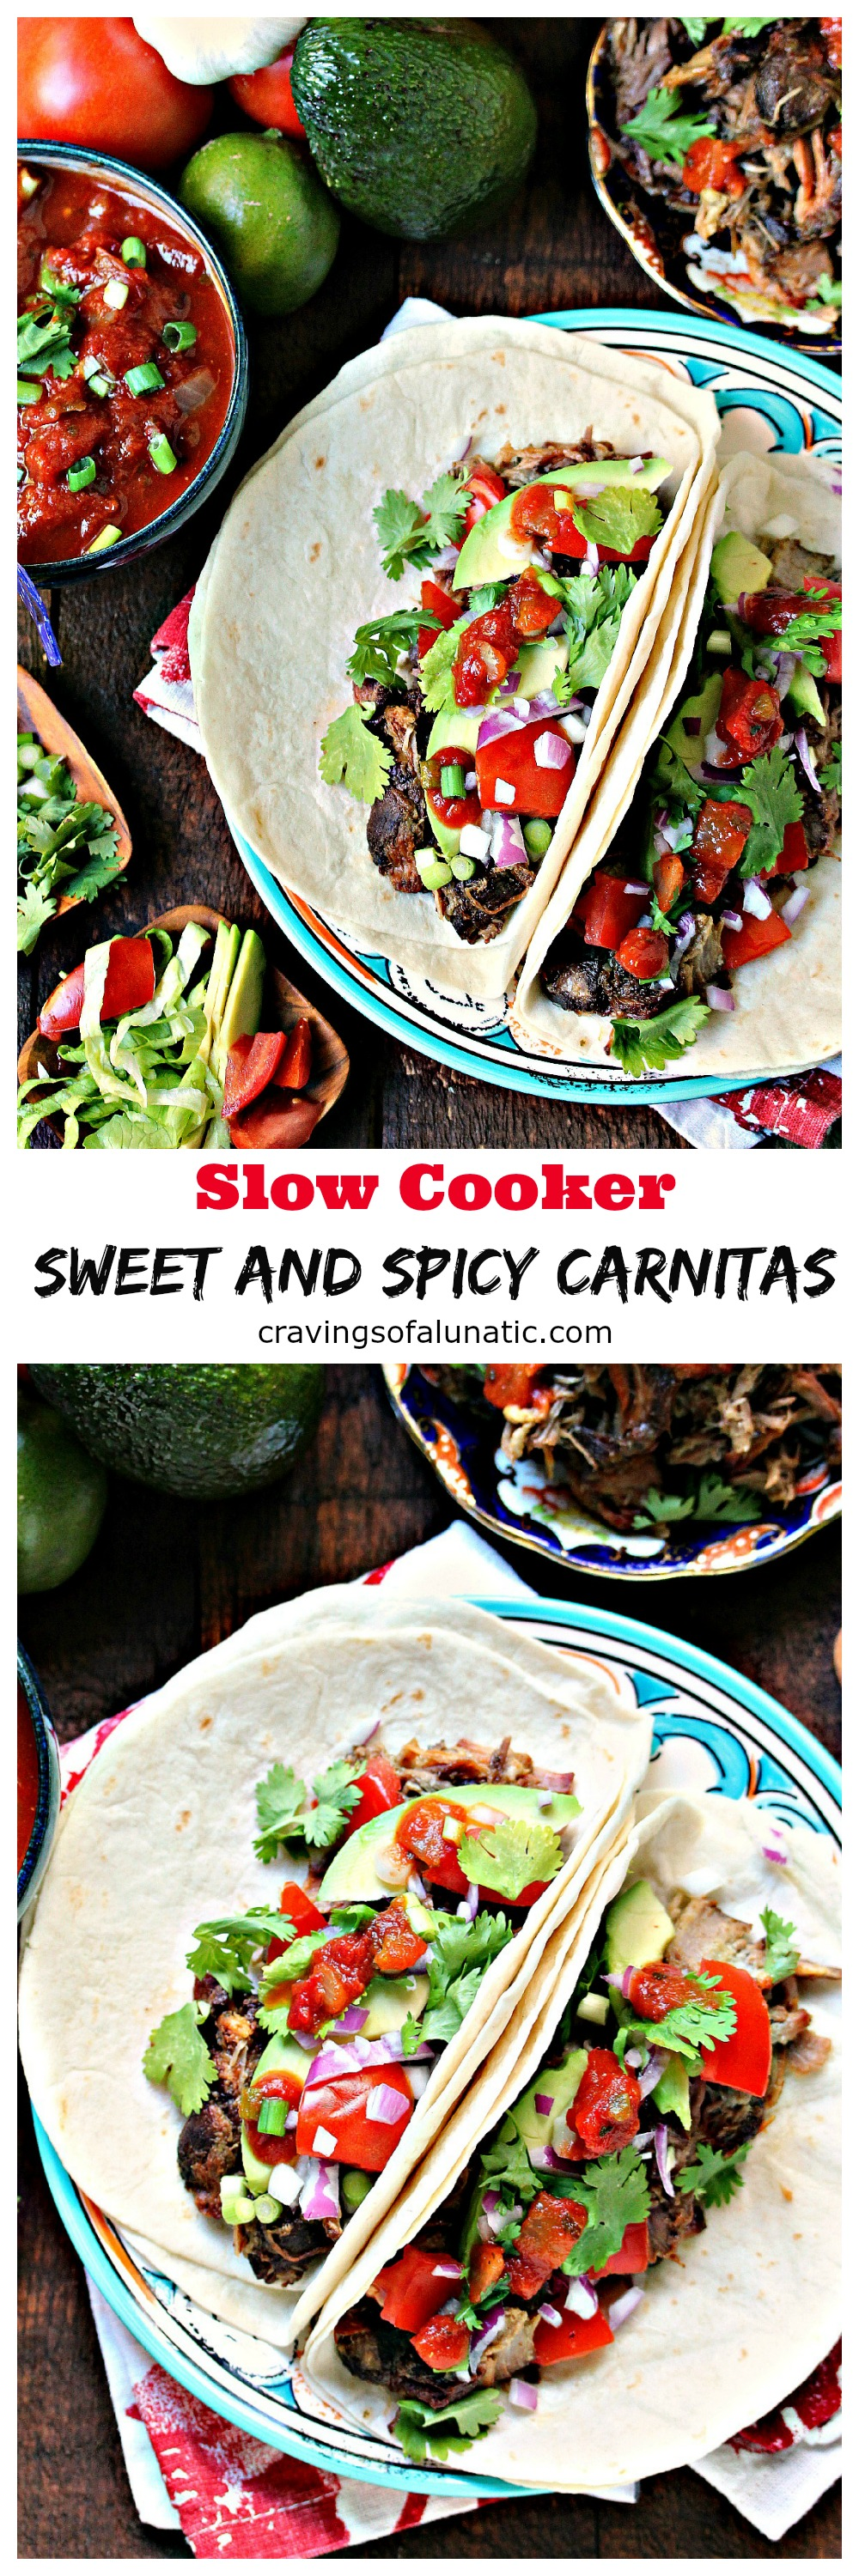 Sweet and Spicy Slow Cooker Carnitas from cravingsofalunatic.com- My family loves pulled pork, this Carnitas recipe is always a hit in our household. It combines the perfect amount of heat with a just a hint of sweet. Scoop it into tacos with all your favourite toppings. Taco night has never been easier.